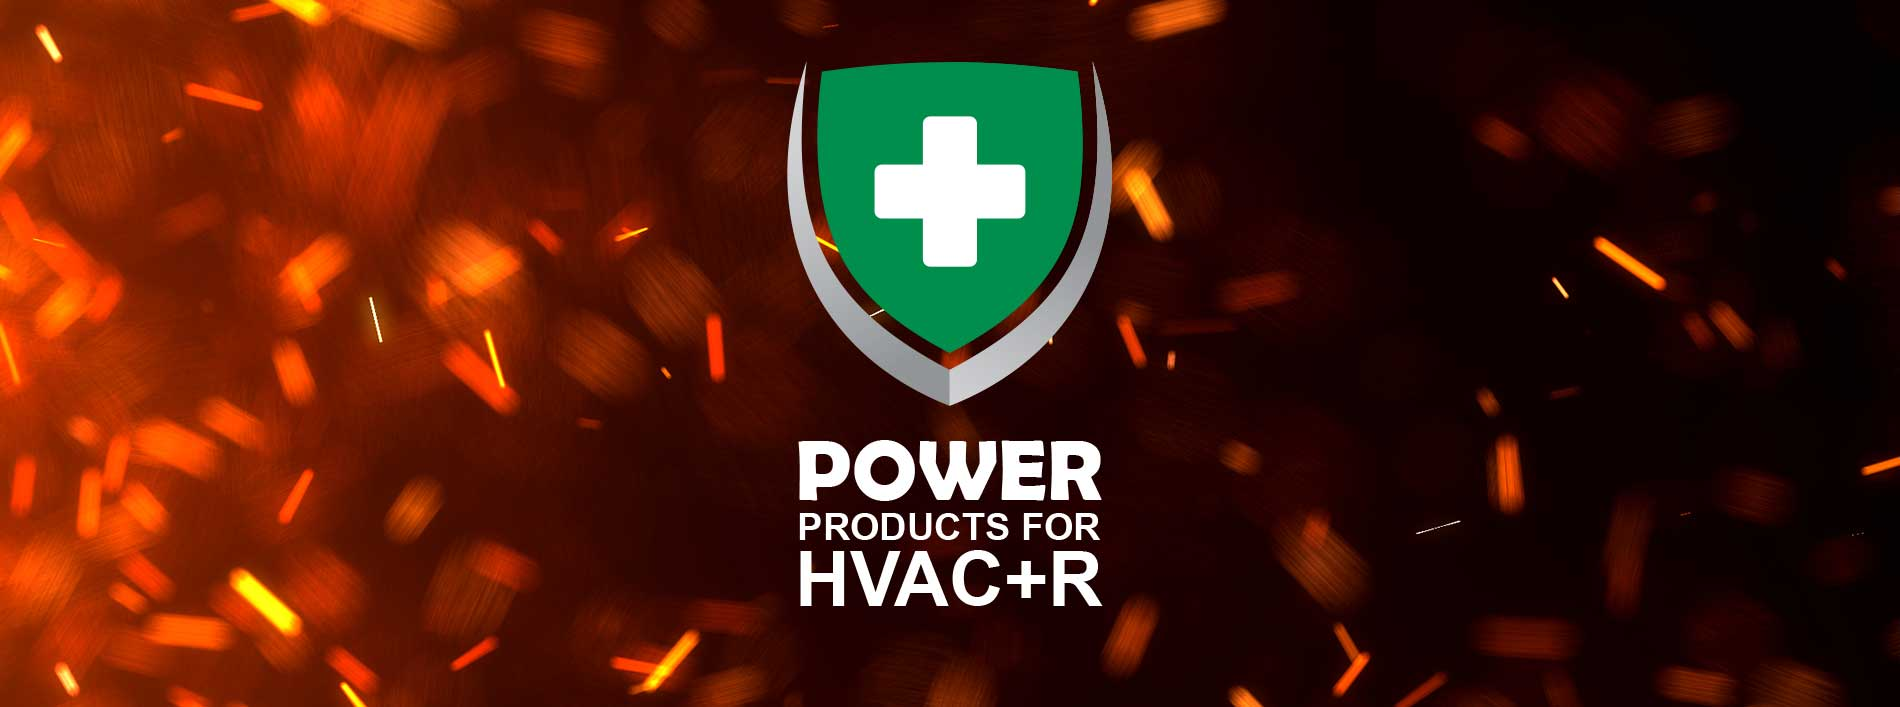 Power Technologies POWER Pack of HVAC Products